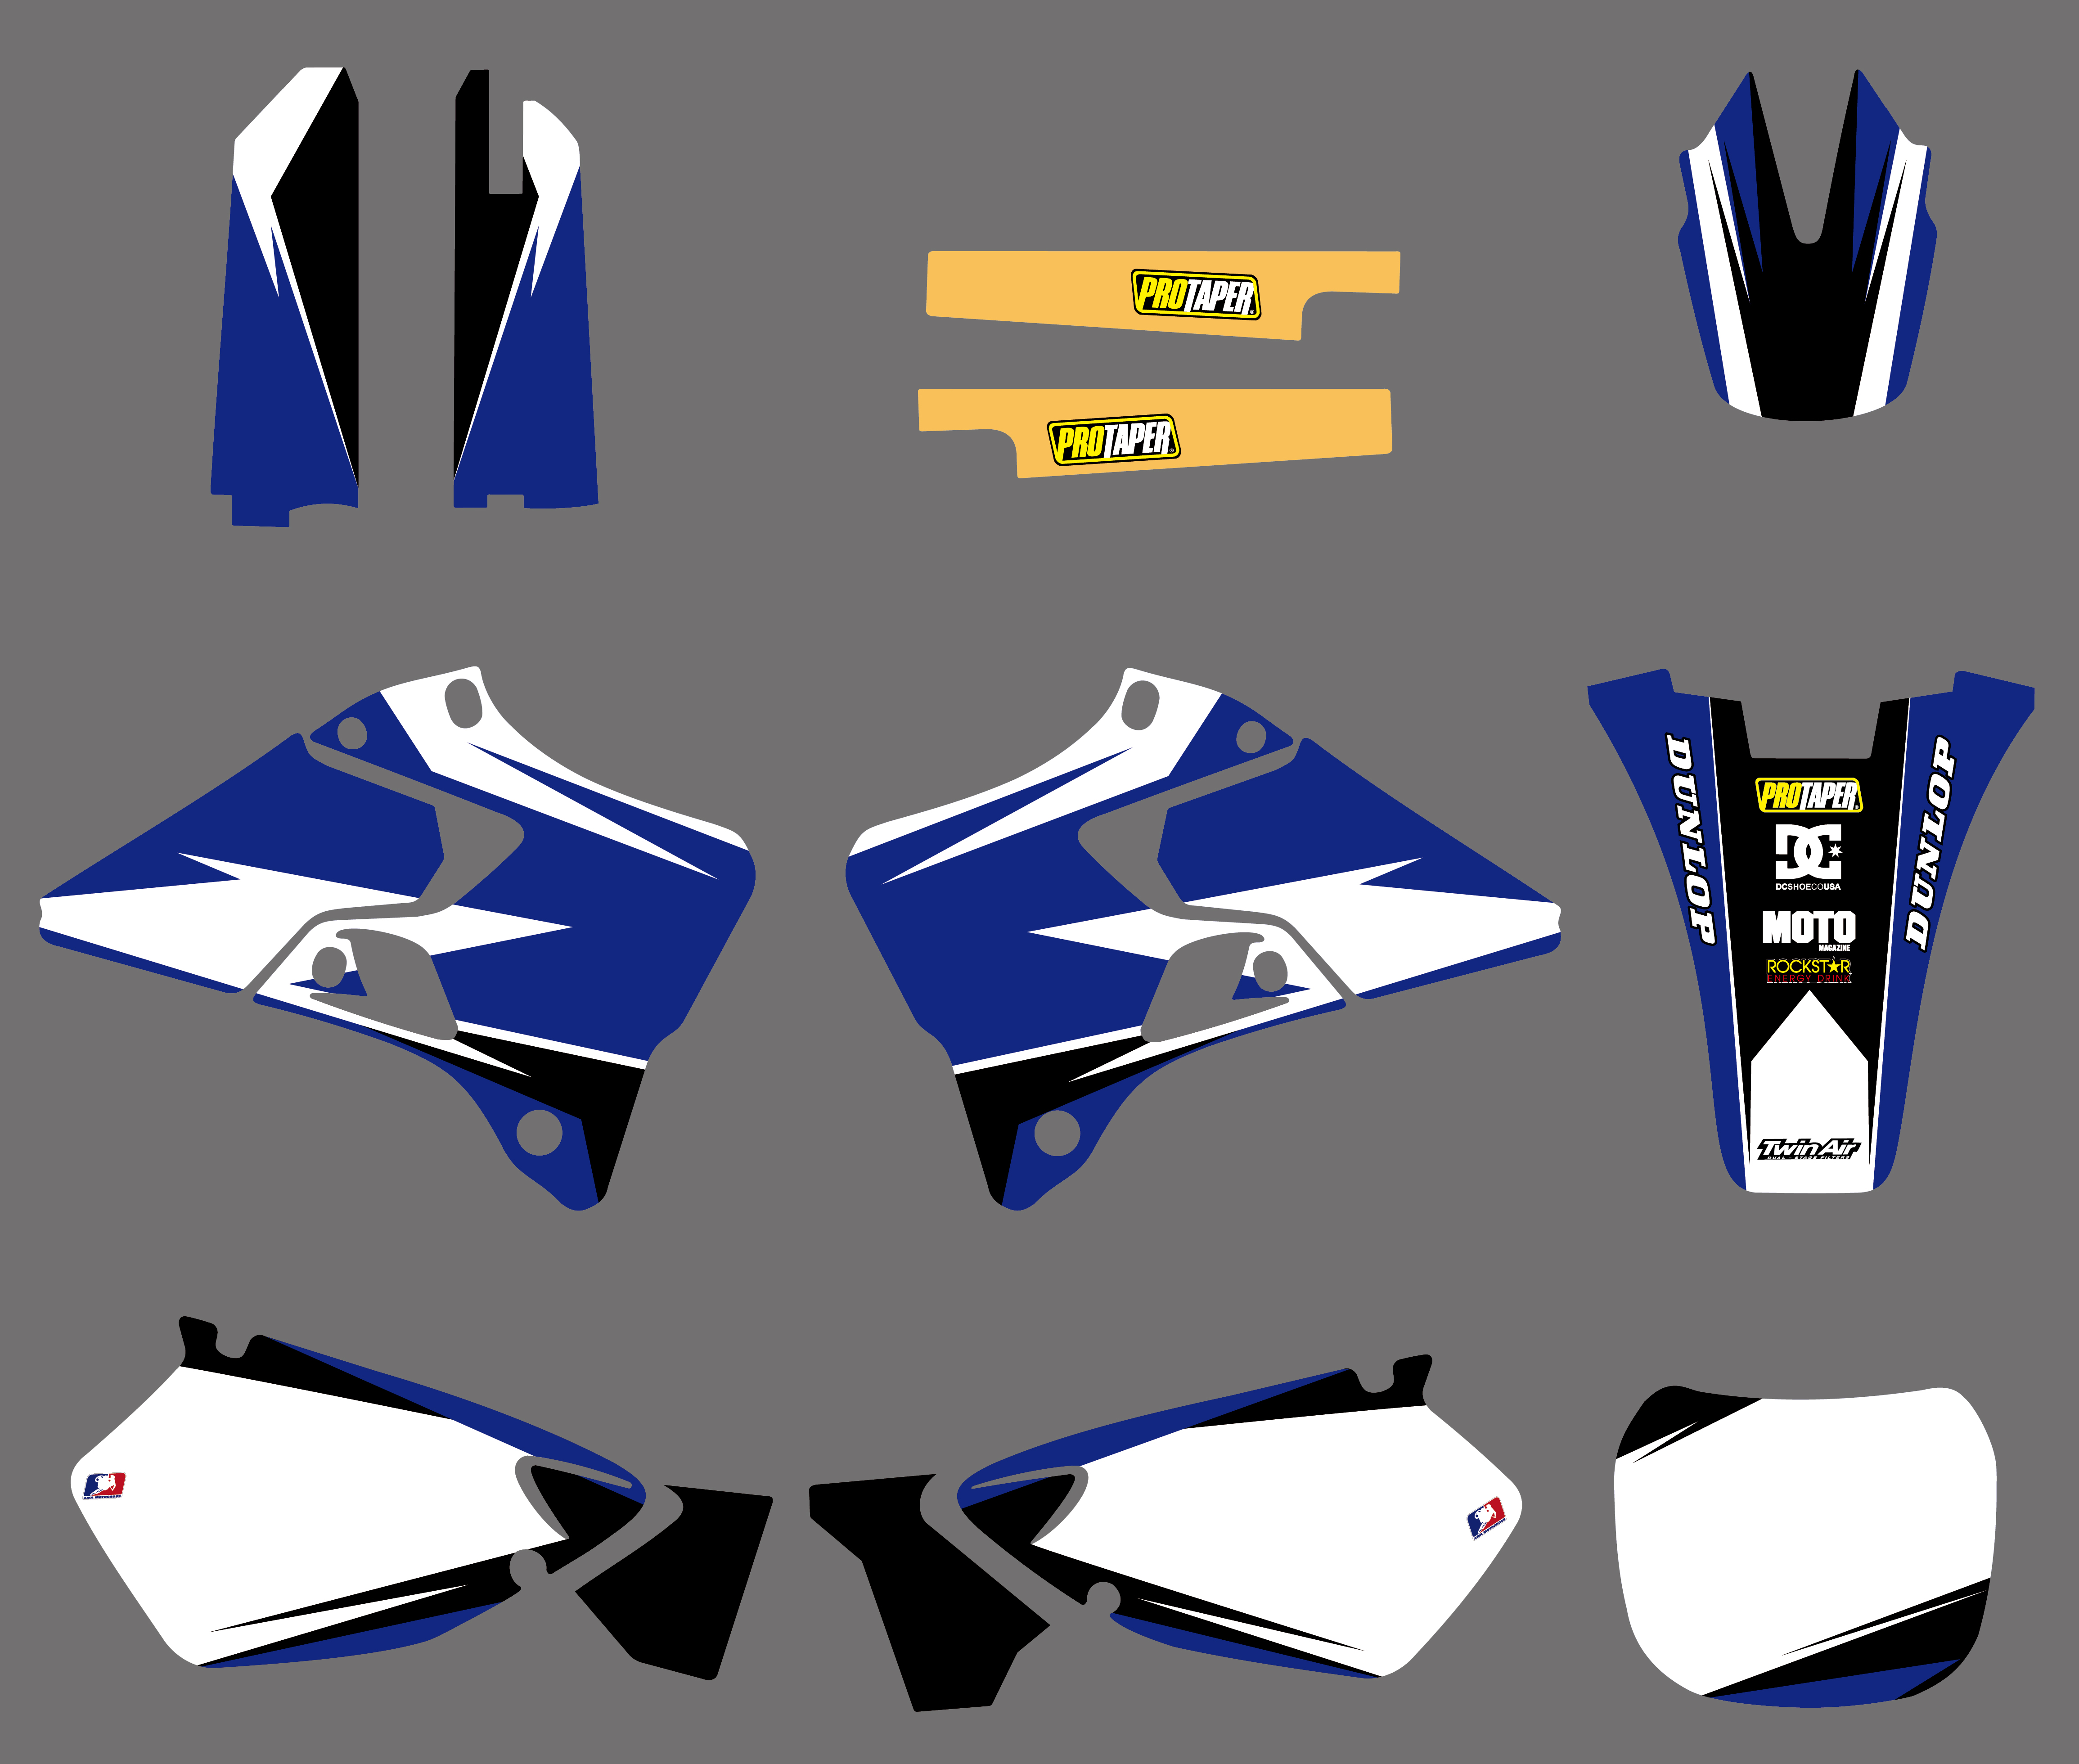 For Yamaha YZ125 YZ250 1996-2001 Motorcycle New Team Graphic Background Decal Stickers Kit For <font><b>YZ</b></font> <font><b>125</b></font> 250 1997 1998 <font><b>1999</b></font> 2000 image